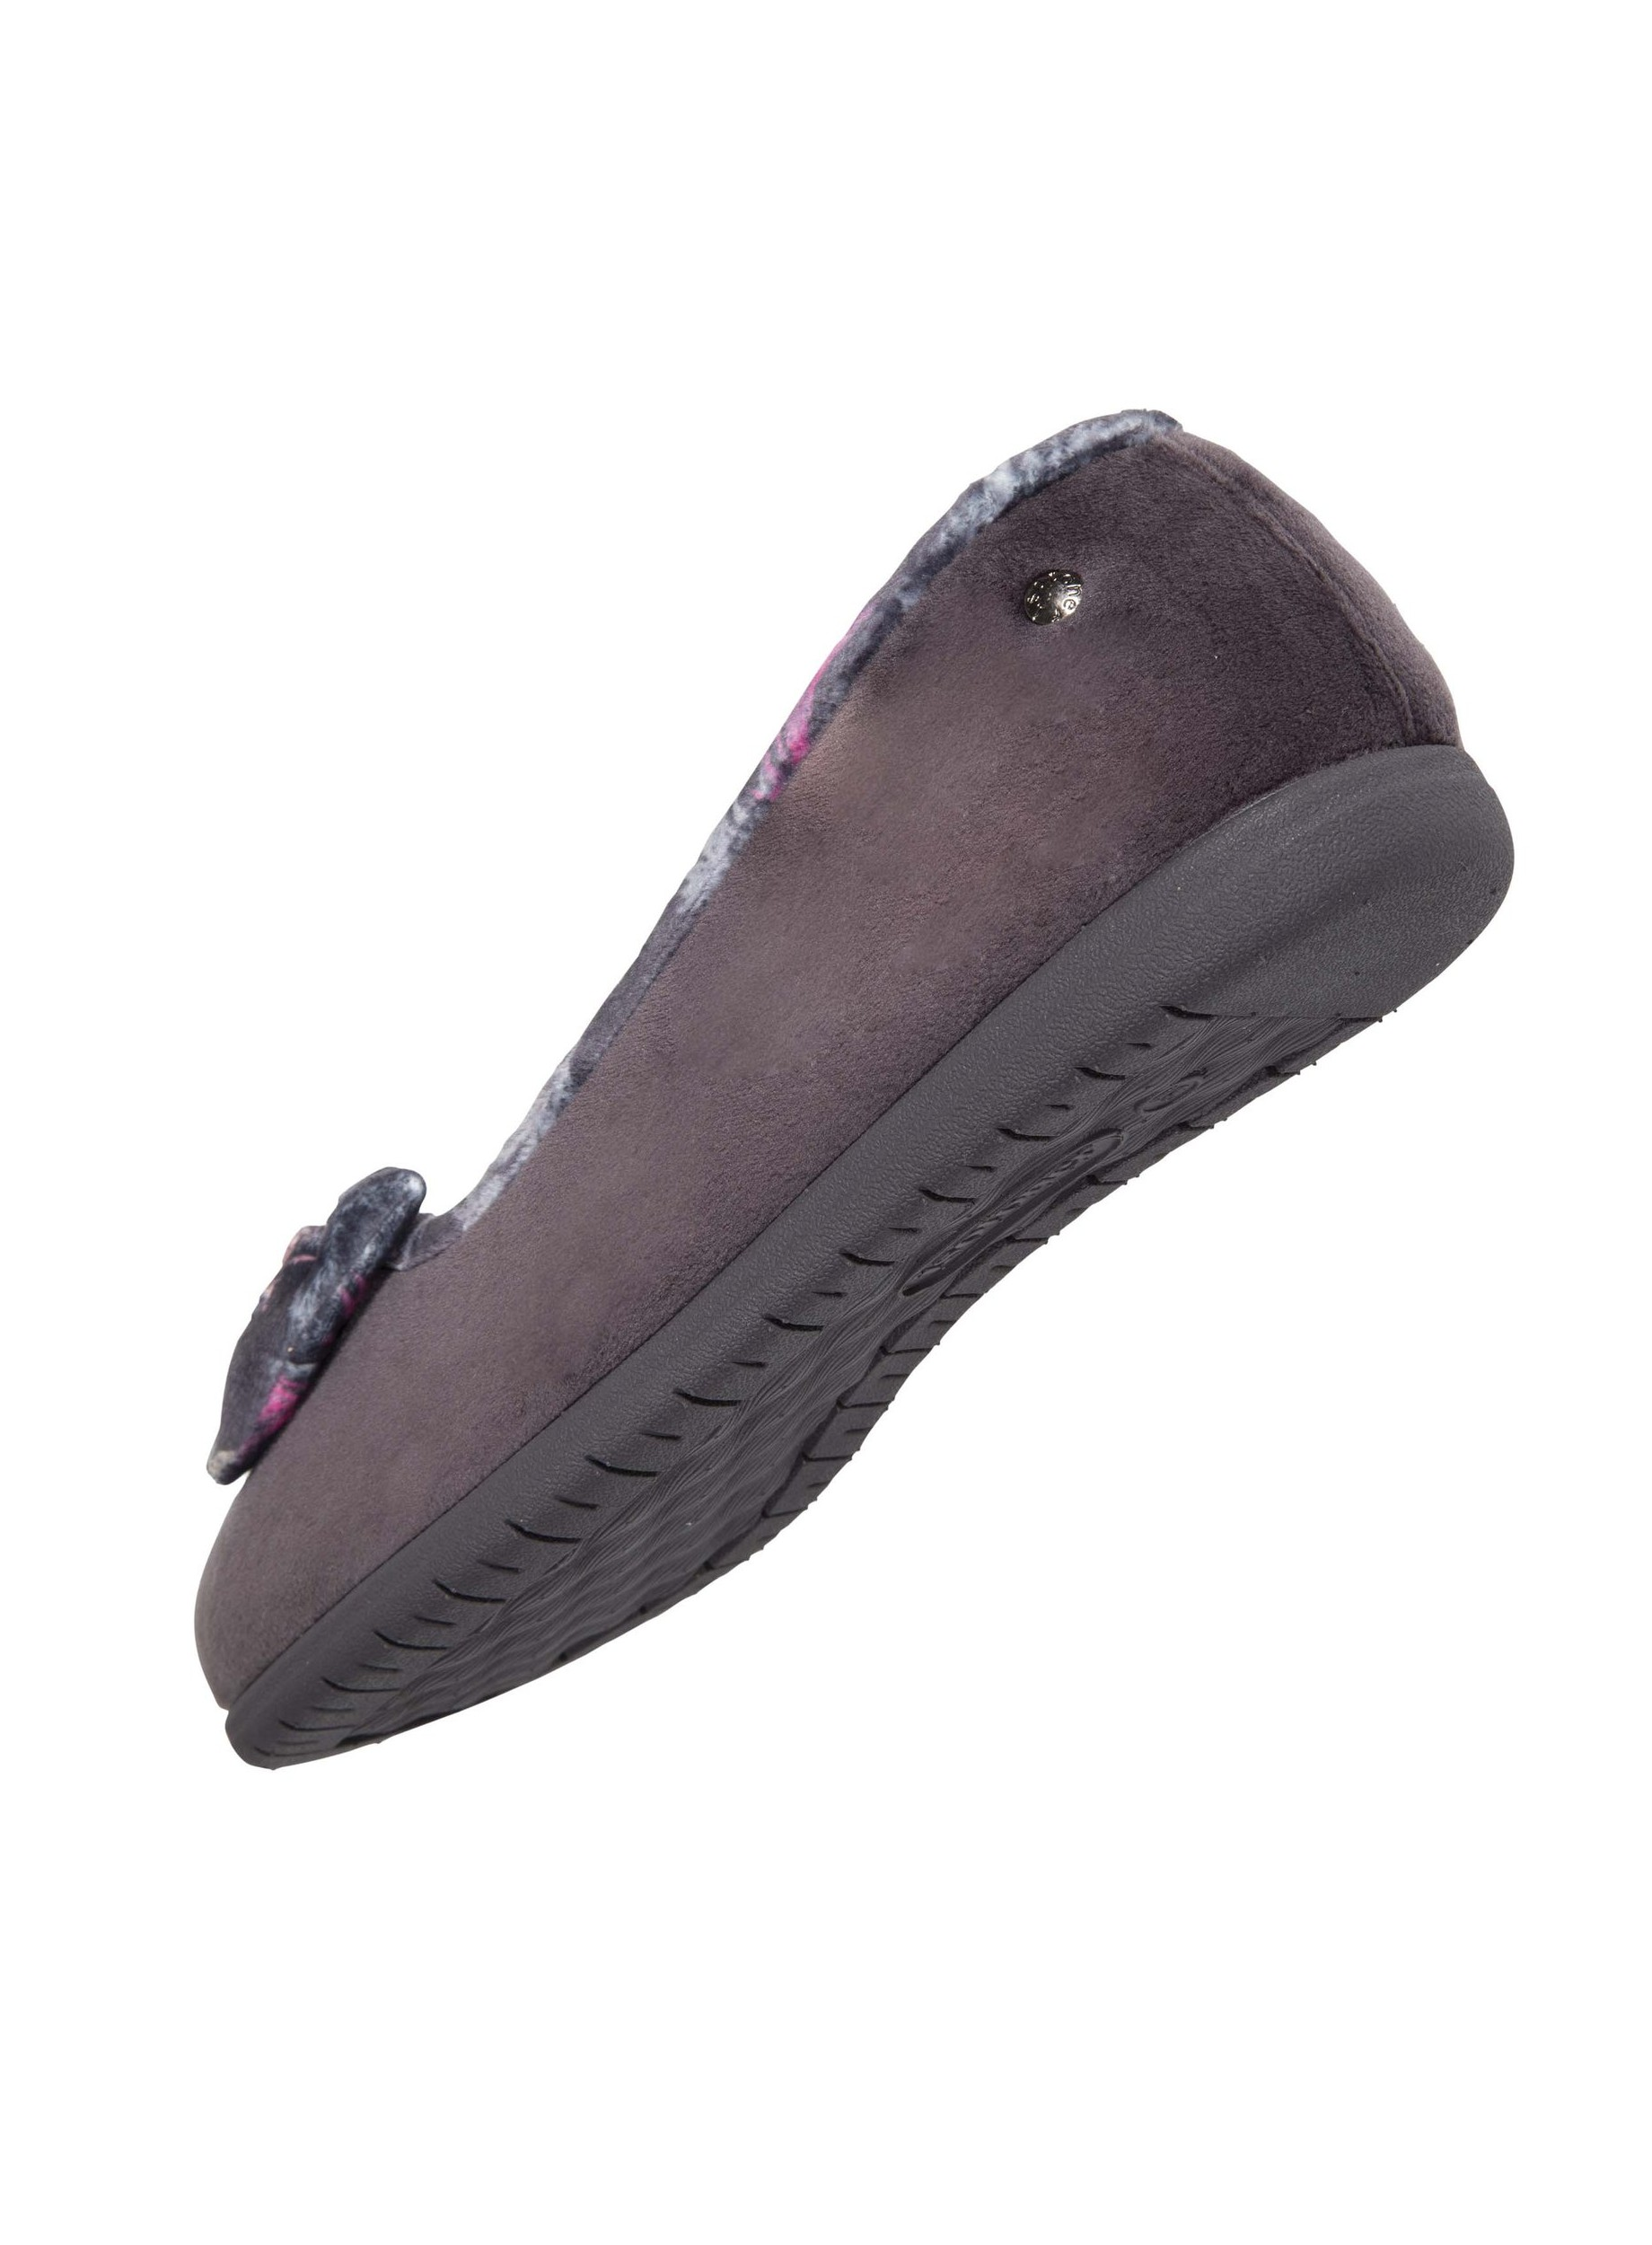 Isotoner chaussons femme noeud 97309 gris